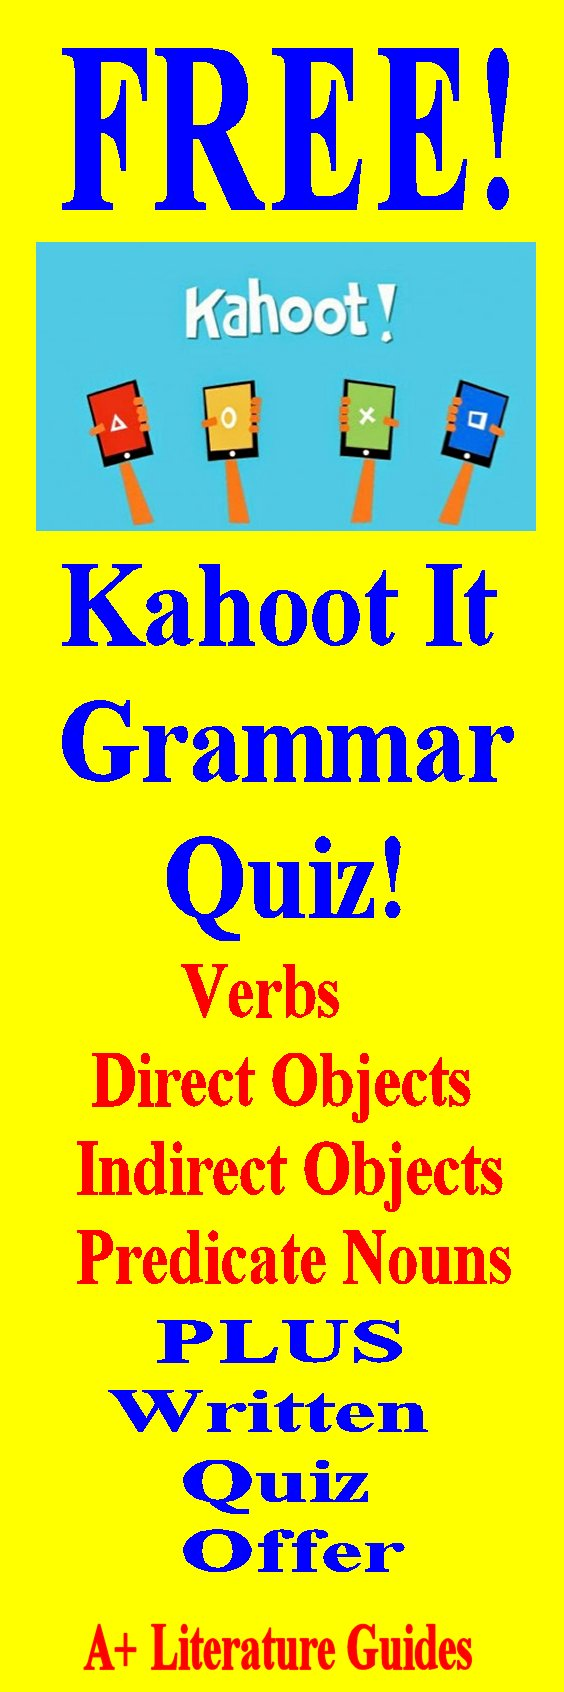 This is a link for a Kahoot It Grammar Quiz which covers verbs, direct objects, indirect objects, predicate nouns and predicate adjectives.  It also provides information on purchasing the written version of the quiz with answer key.